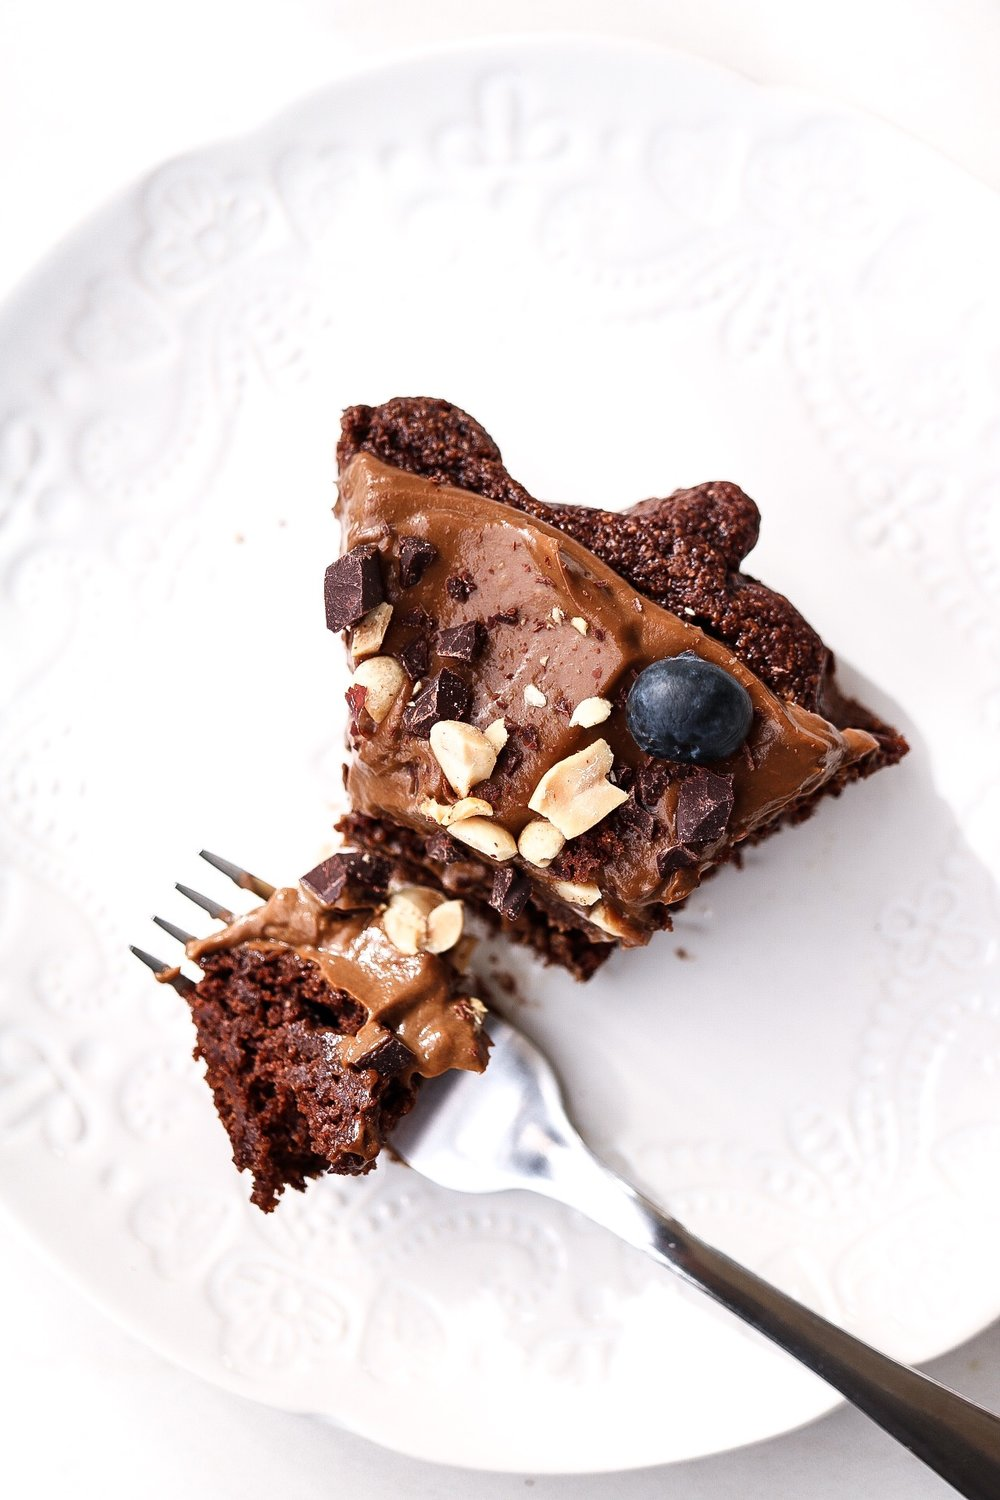 Date-Sweetened Chocolate Cake - CAKE INGREDIENTS:1 cup dates1 1/4 cup water1 Tbsp baking powder1/2 tsp salt1/3 cup cacao powder1 cup all purpose or spelt flour1/2 bar Alter Eco 90% dark chocolate - choppedFROSTING INGREDIENTS:1 ripe avocado1/4 cup plant milk2-3 Tbsp maple syrup2 Tbsp cacao powderINSTRUCTIONS:Preheat your oven to 350F. Line a cake pan with parchment paper and set aside. In a food processor, blend together the dates and water. Add in the remaining cake ingredients, except for the chopped chocolate, and pour the batter into the cake pan. Bake the cake for about 30 minutes, or until a toothpick comes out clean with you poke it. While the cake is cooling, blend together the frosting ingredients in a food processor until smooth.